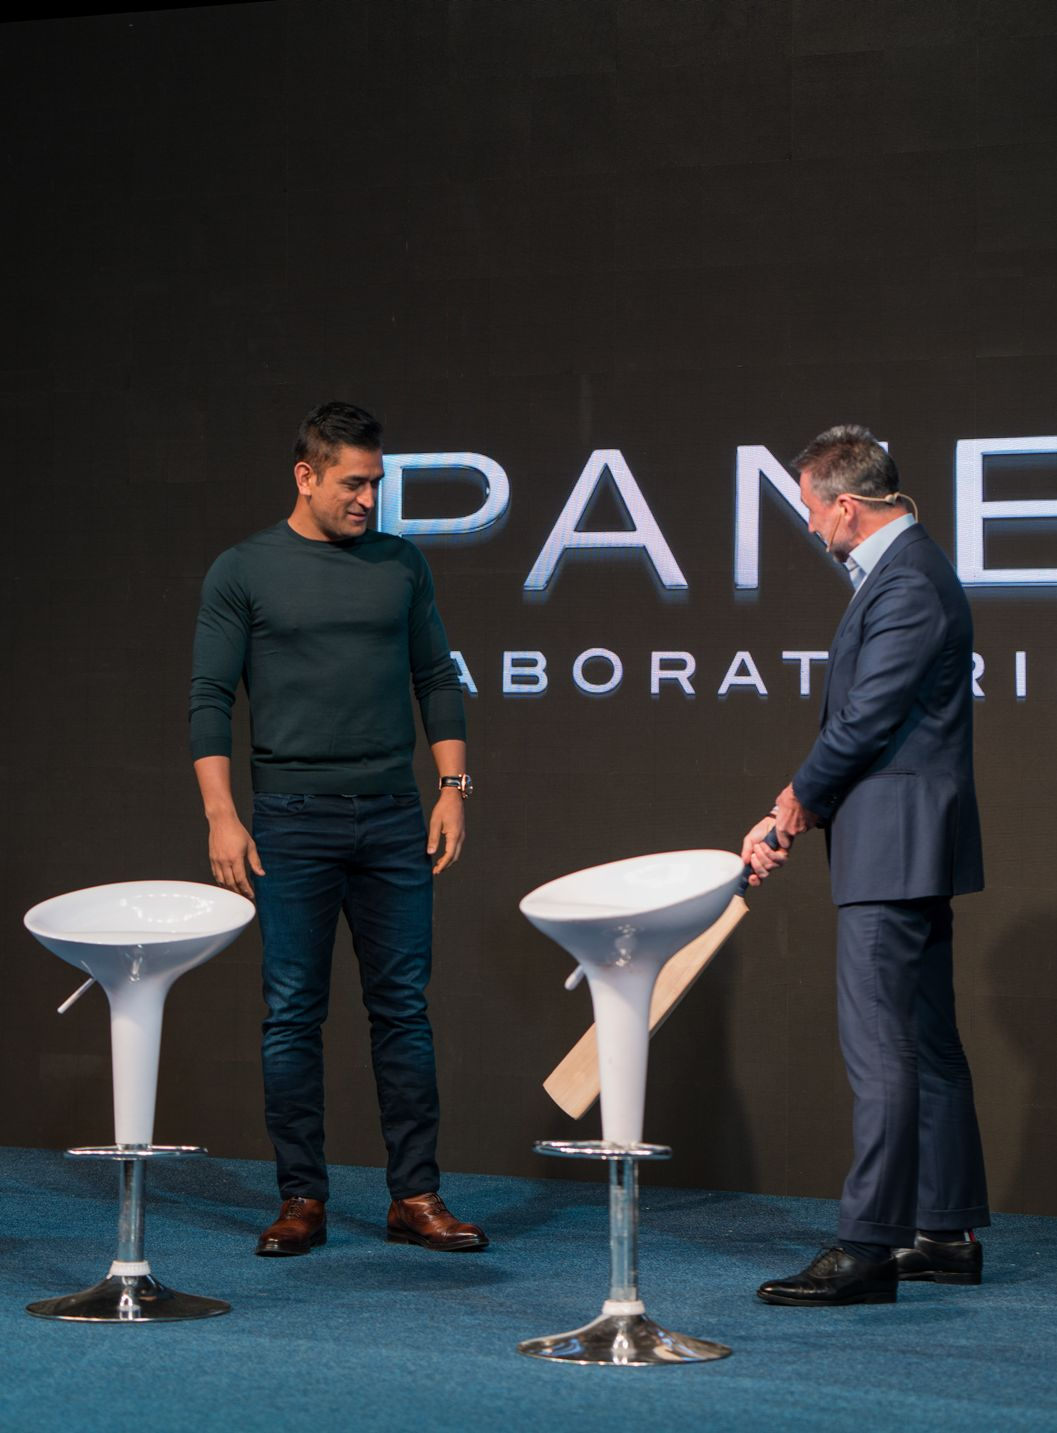 ms dhoni panerai00173 - Panerai plays the helicopter shot with MS Dhoni special edition watches